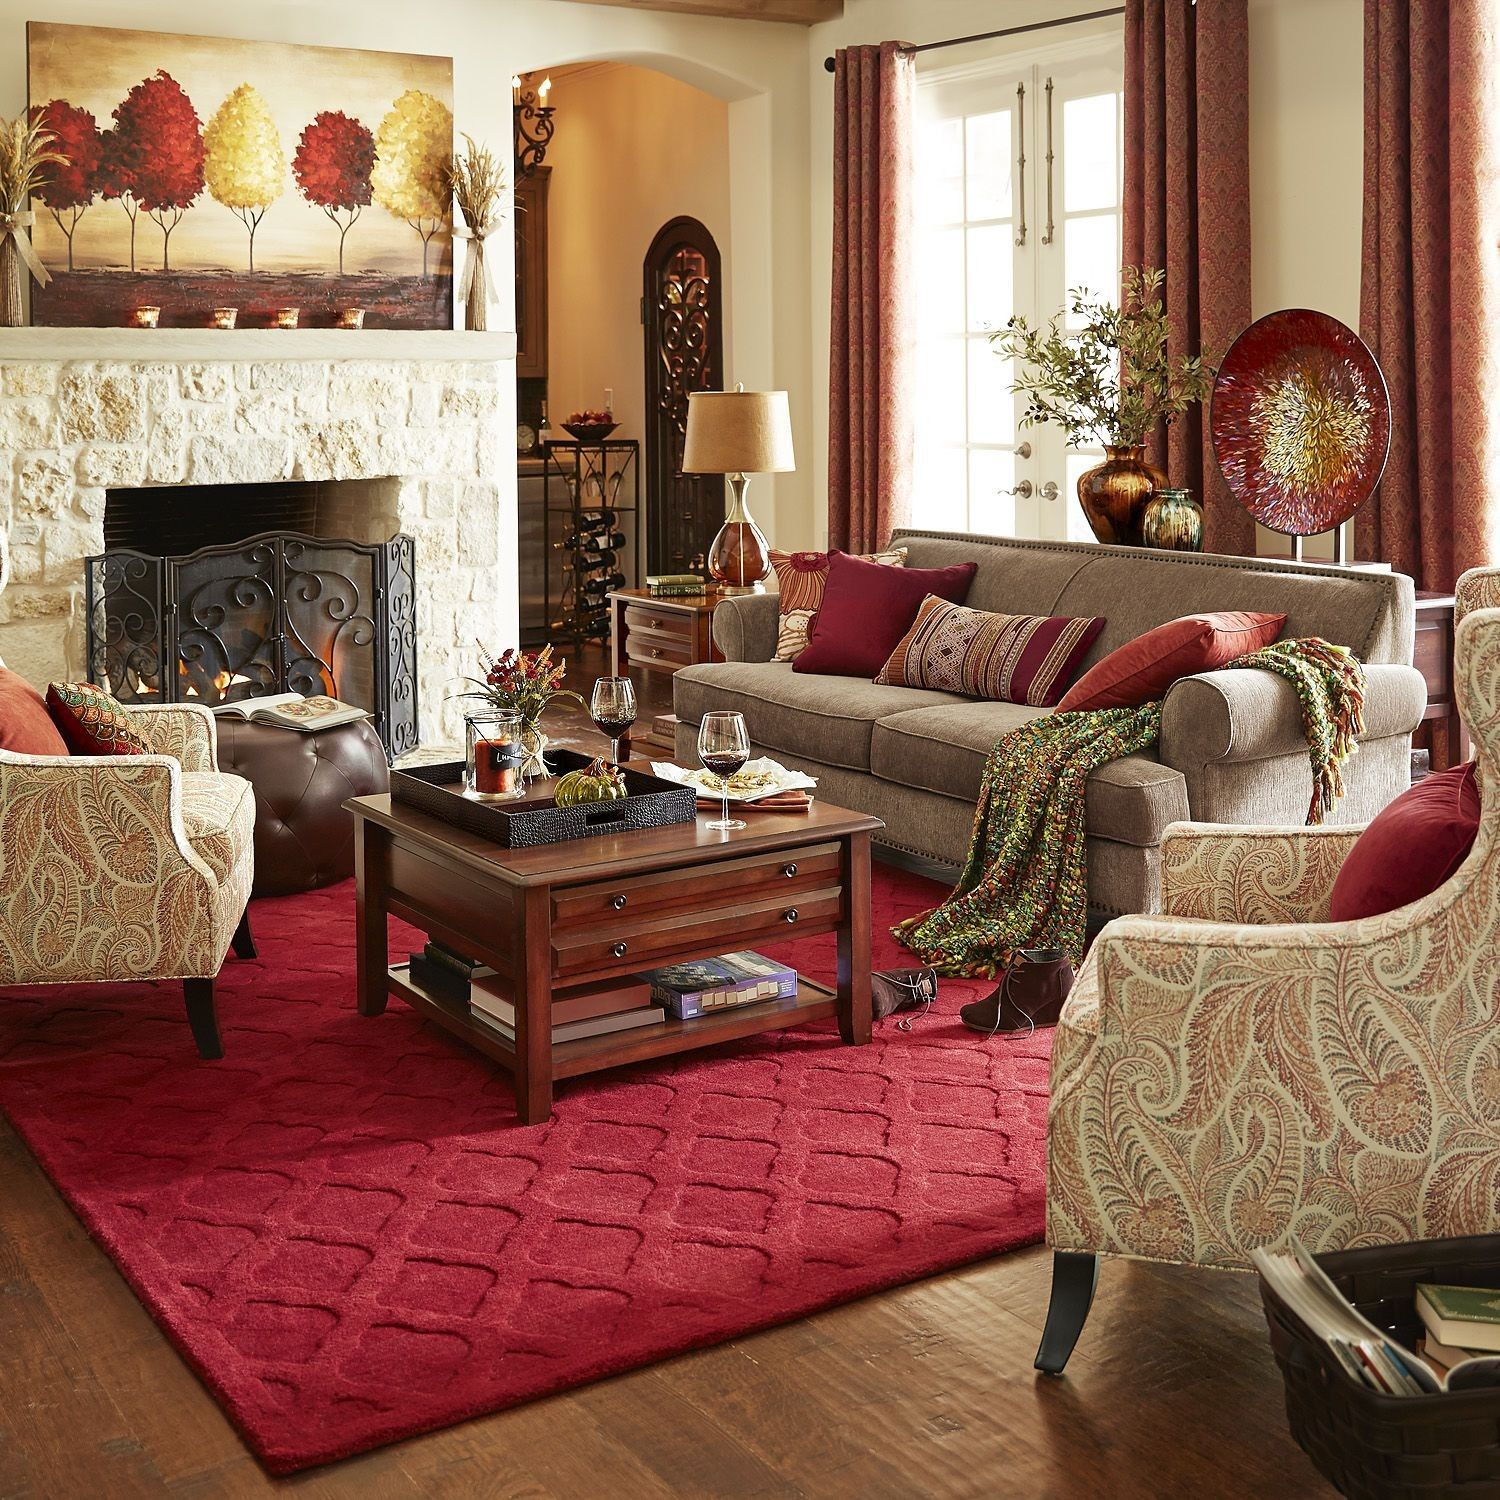 Taupe Room Color Schemes With White Chairs Taupe Living Room Beige Living Rooms Interior Design Living Room